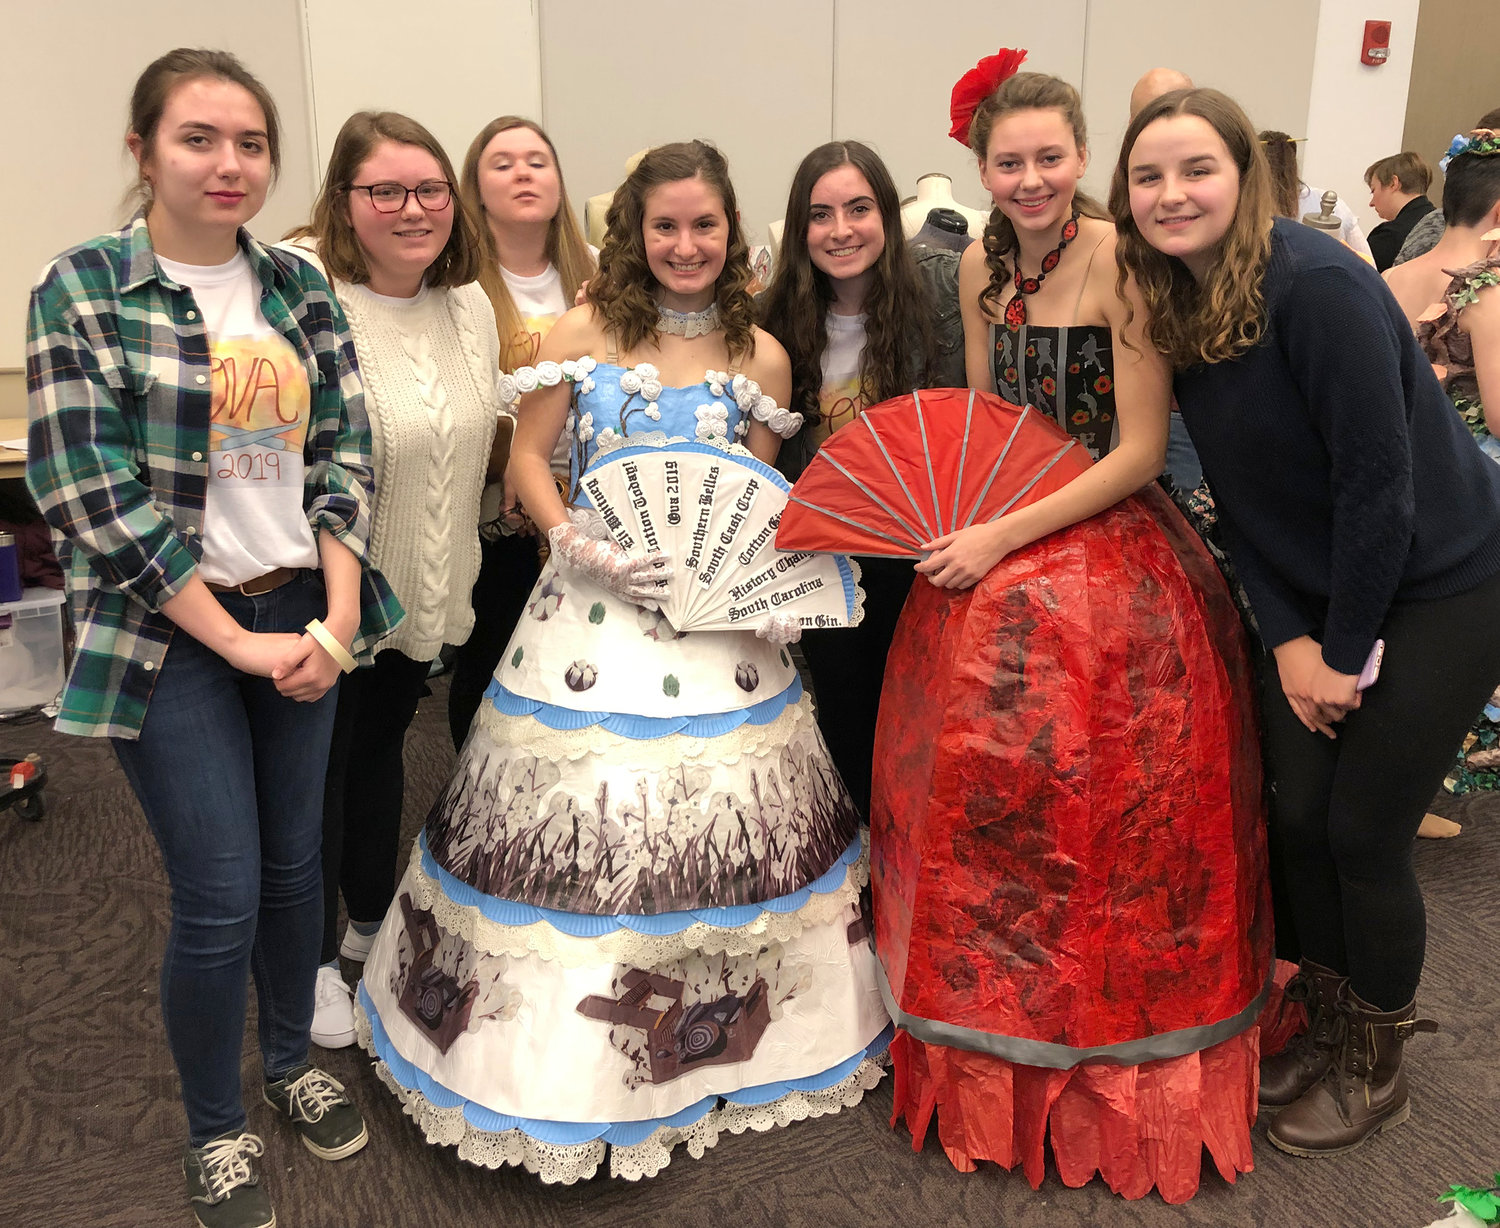 PAPER PRINCESSES — Clinton High School students show off their paper dress designs at the Olympics of the Visual Arts in Saratoga Springs April 4.